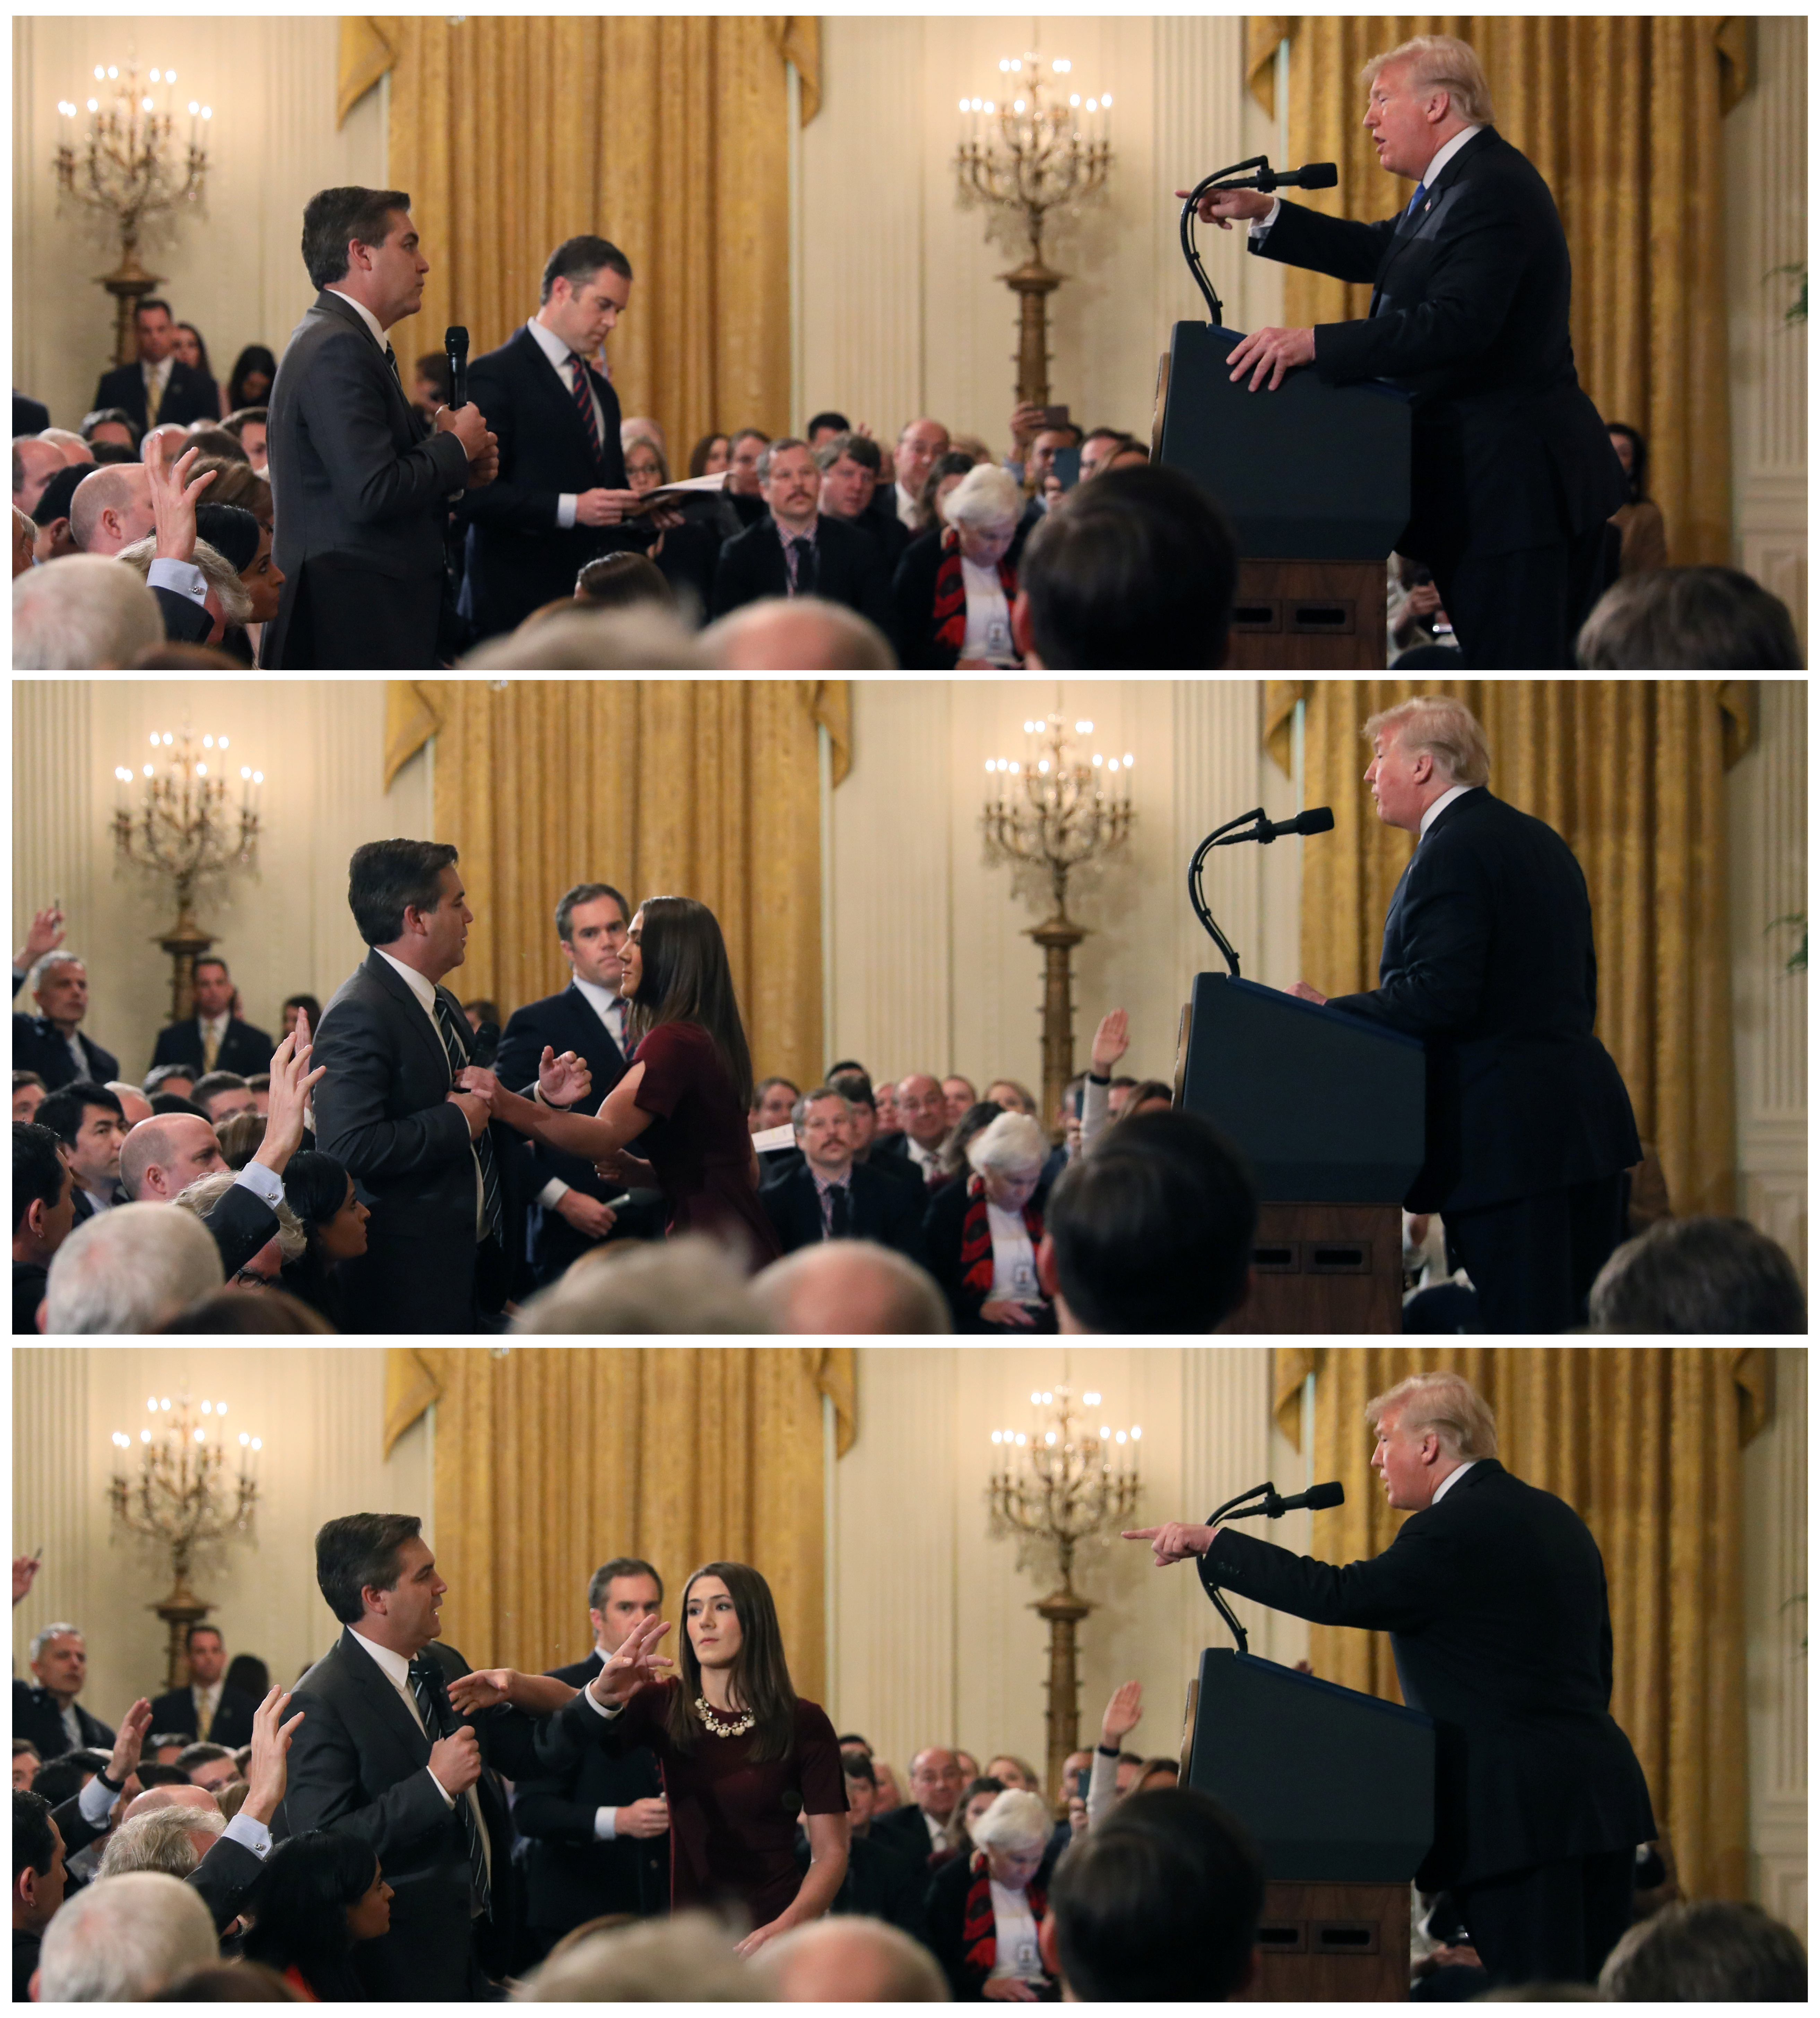 A White House staff member reaches for the microphone held by CNN's Jim Acosta as he questions President Donald Trump during a news conference following Tuesday's midterm U.S. congressional elections, in a combination of photos at the White House in Washington, November 7, 2018. REUTERS/Jonathan Ernst